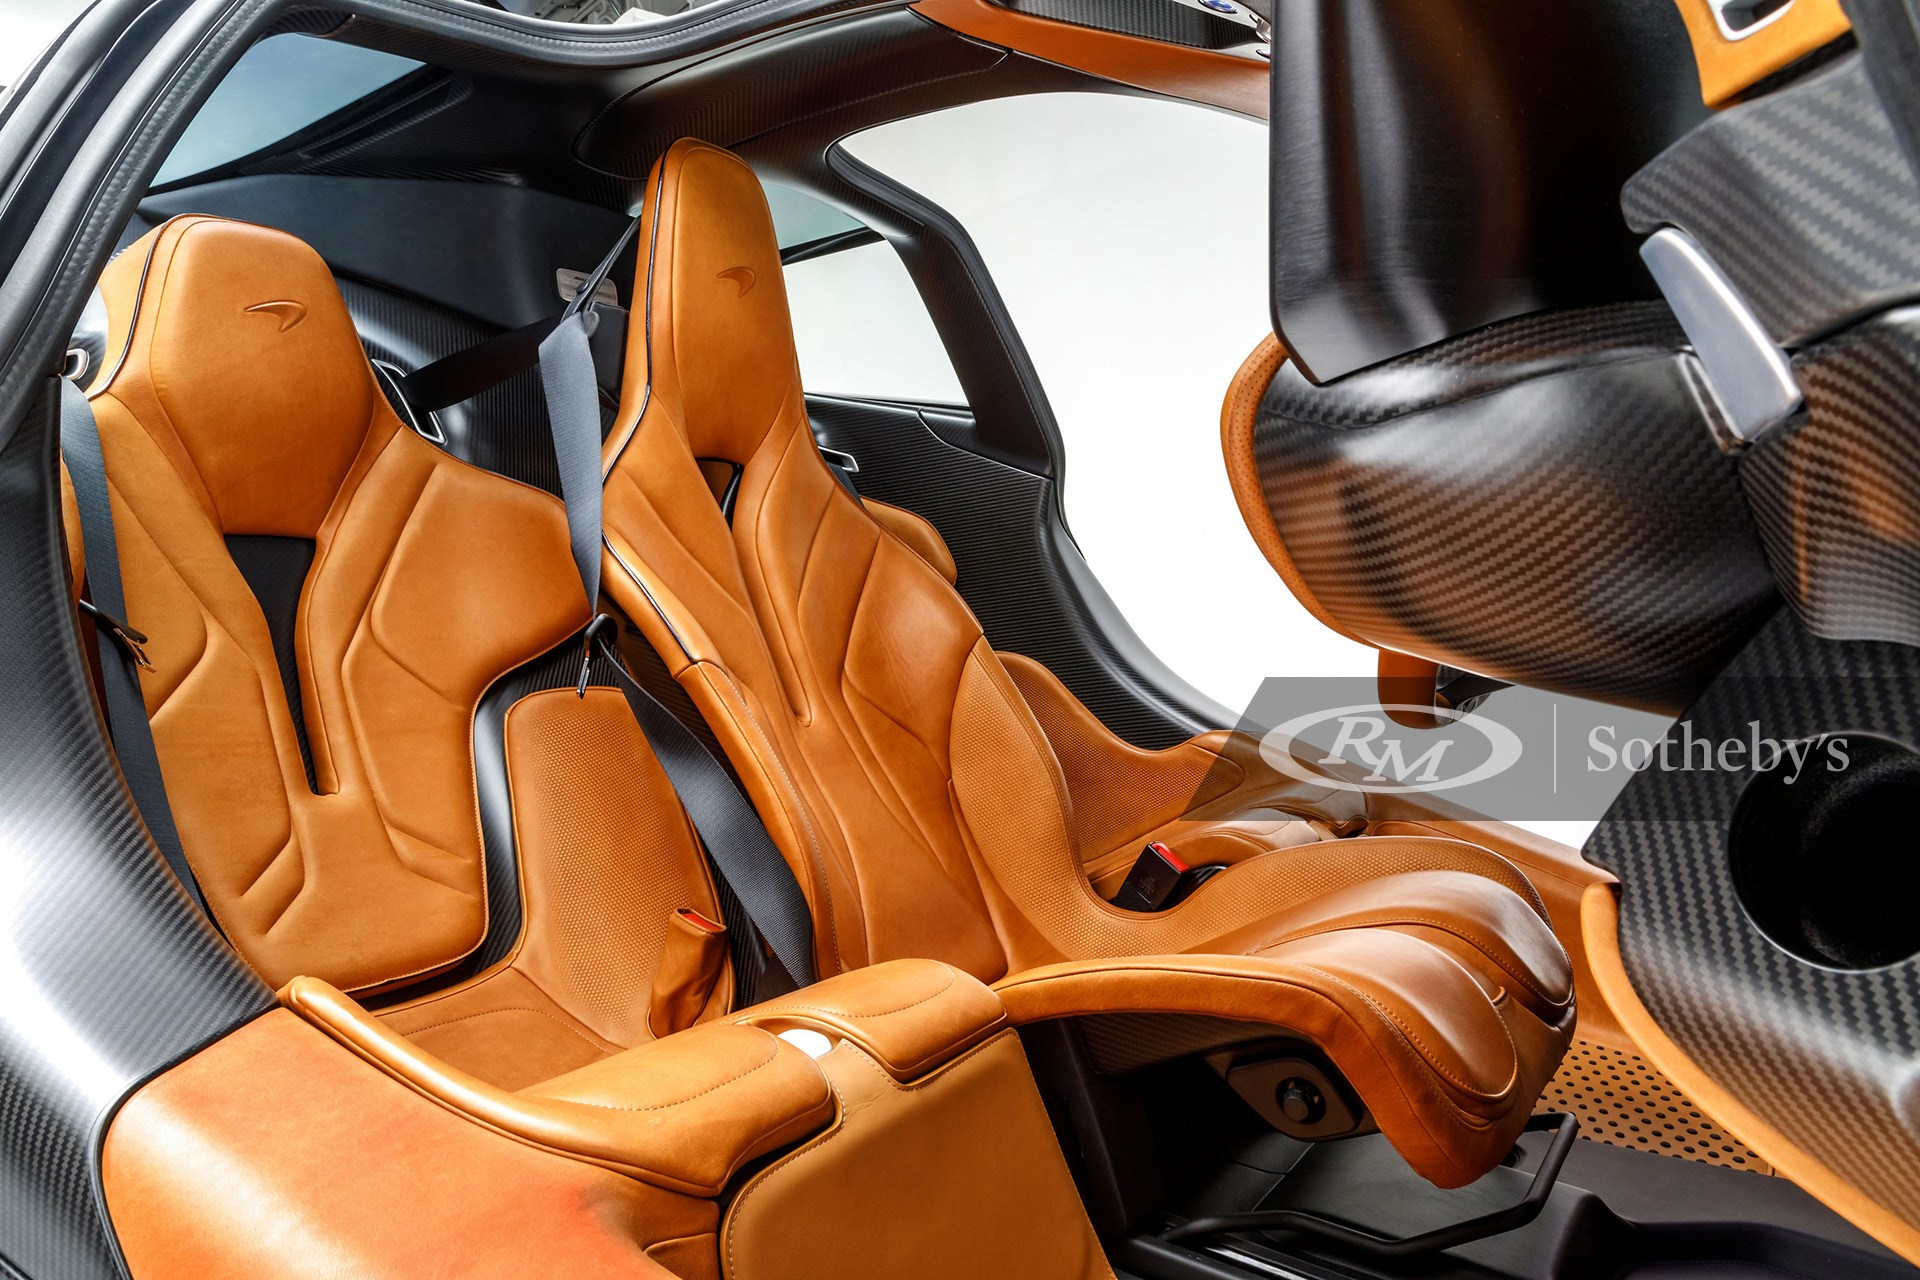 Vintage Tan Aniline Leather Three-Seat Cockpit of 2020 McLaren Speedtail available at RM Sotheby's Arizona Live Auction 2021